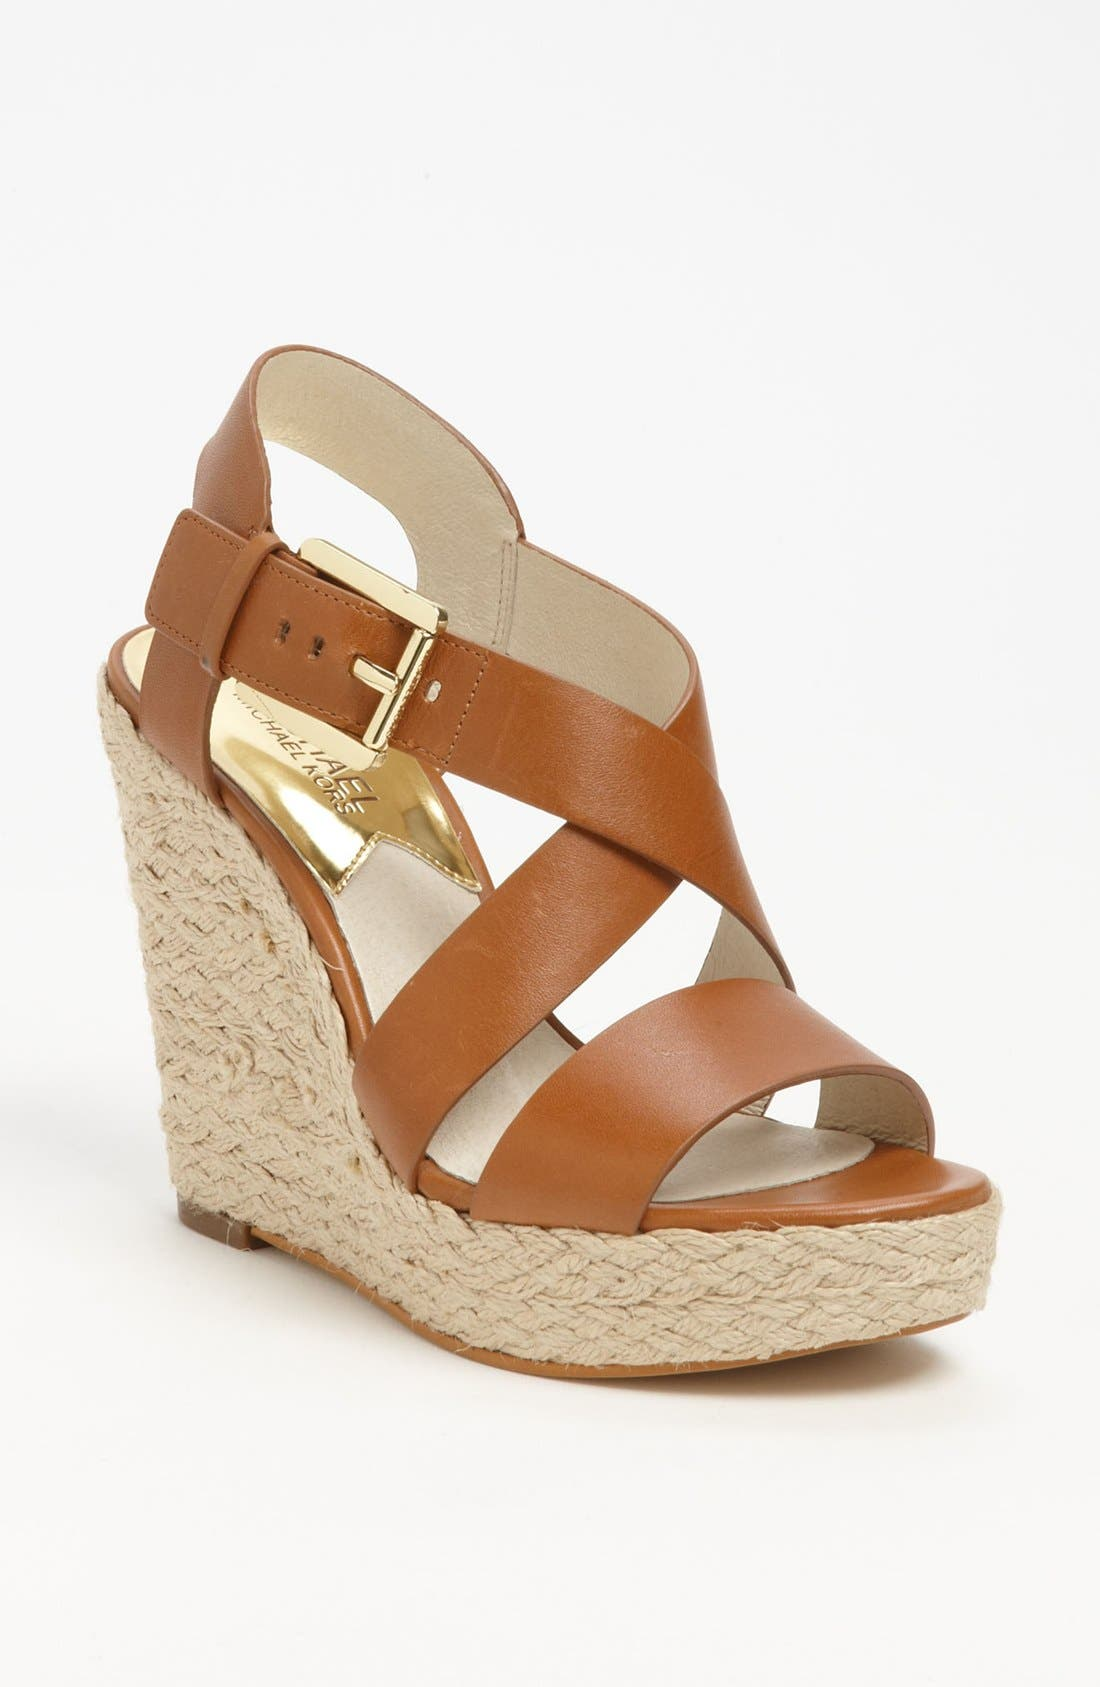 Alternate Image 1 Selected - MICHAEL Michael Kors 'Giovanna' Wedge Sandal